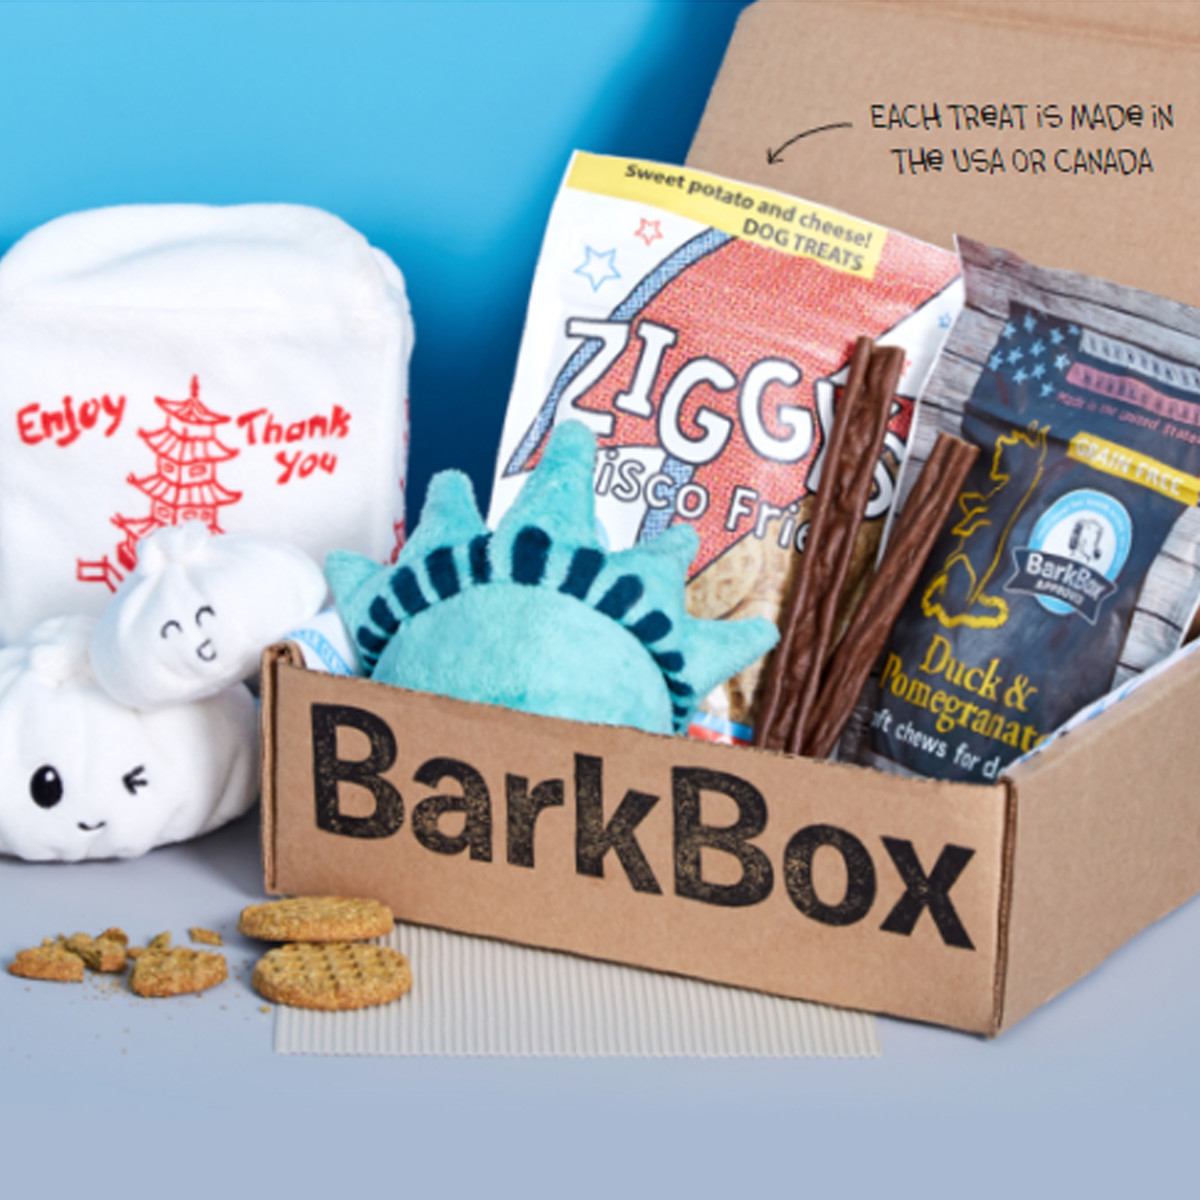 BarkBox photo